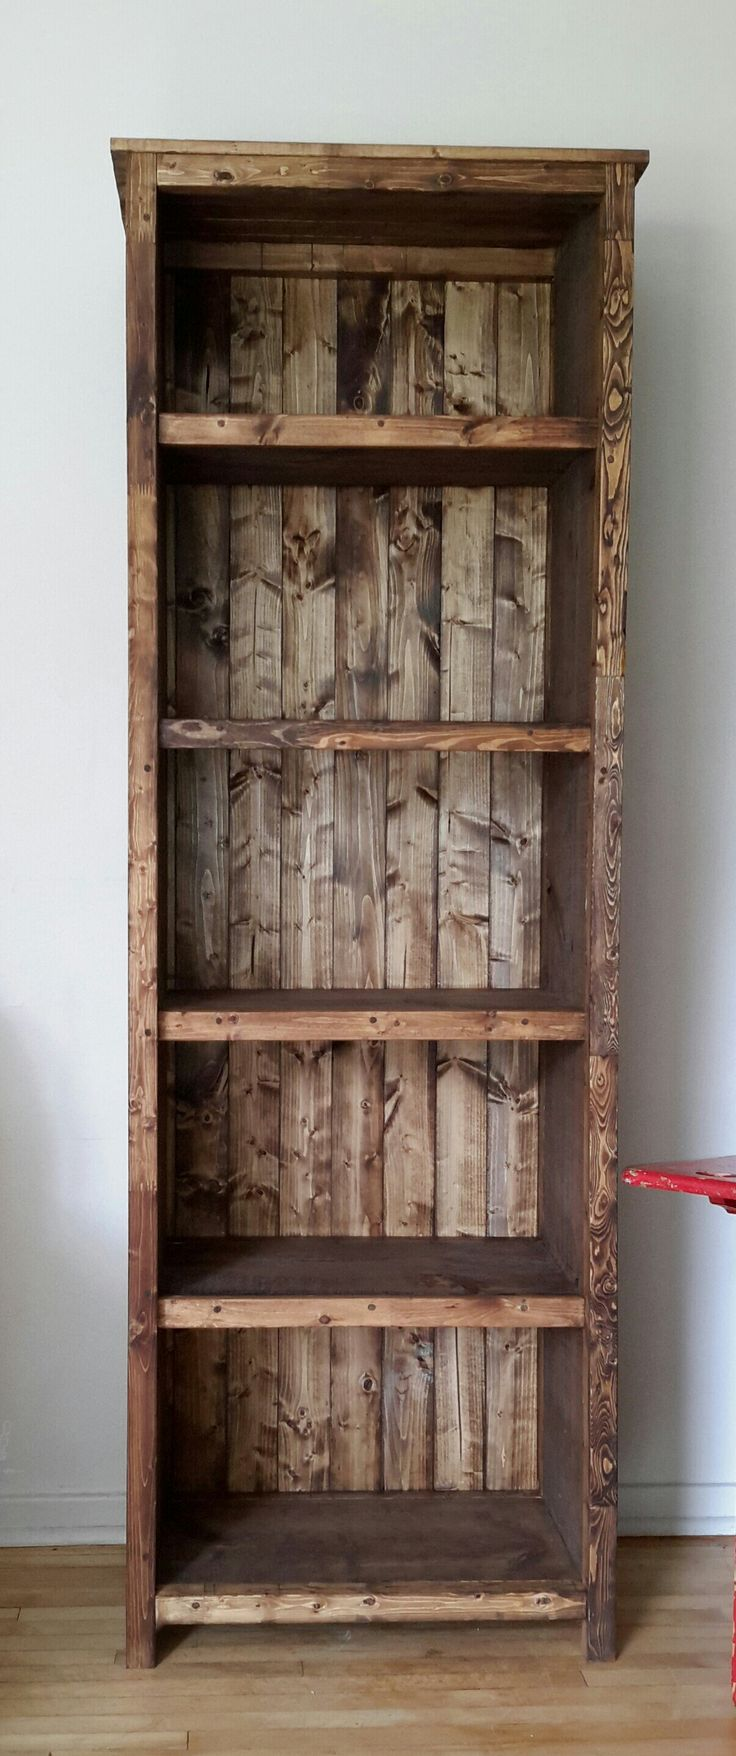 Best 25+ Rustic bookshelf ideas on Pinterest | Bookshelf diy, Ana ...